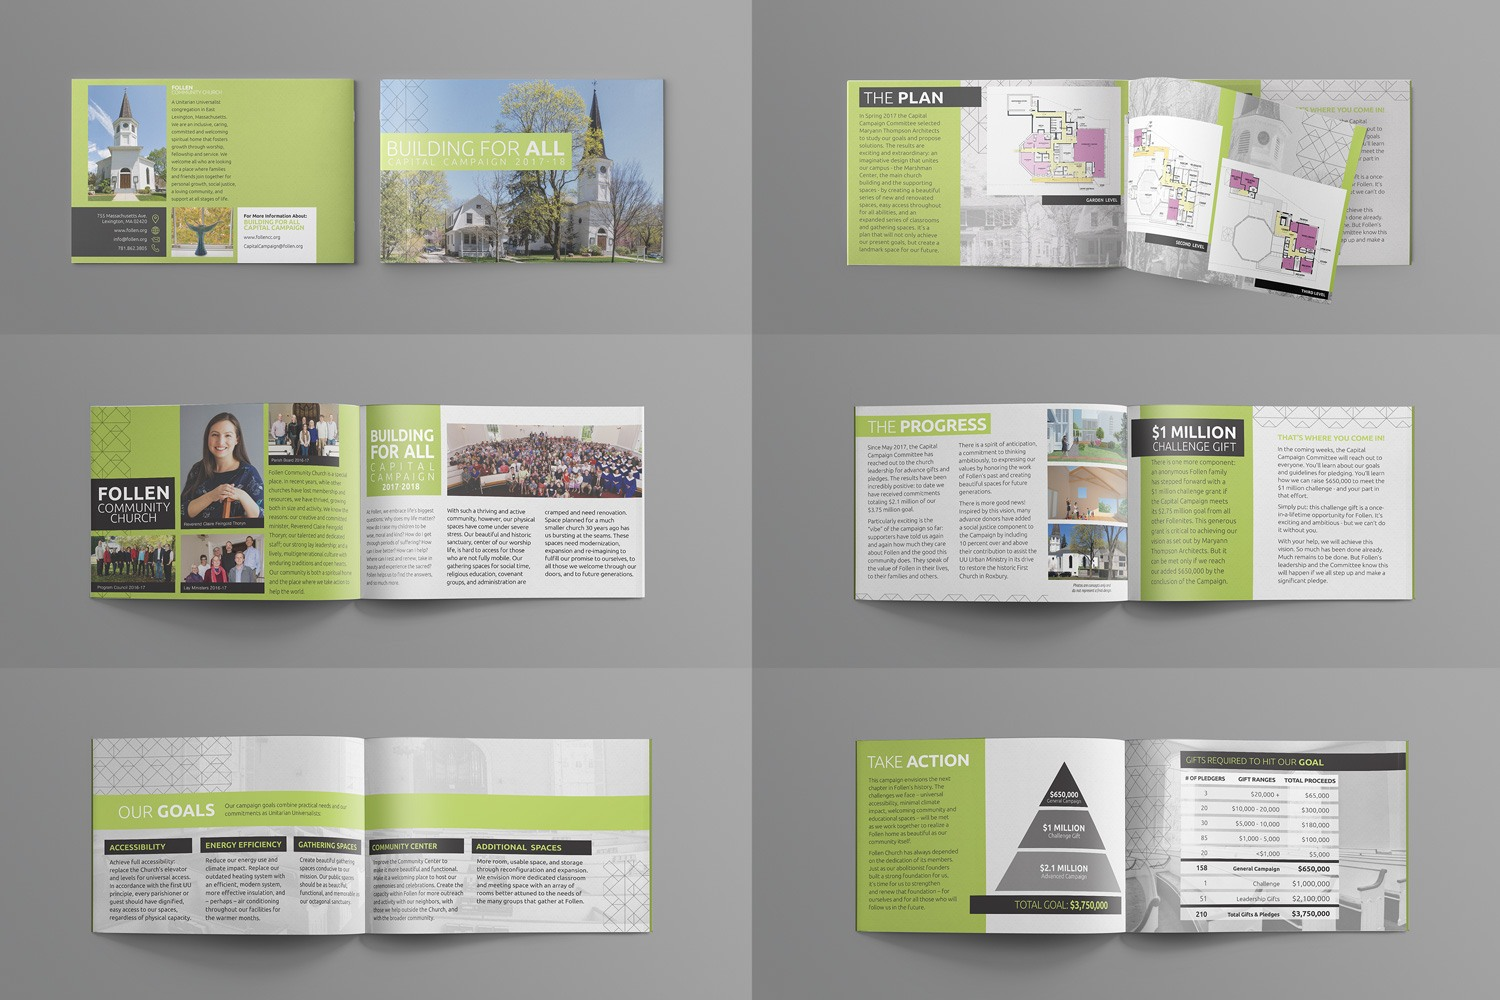 Church capital campaign brochures for stewardship case statement design ideas, examples